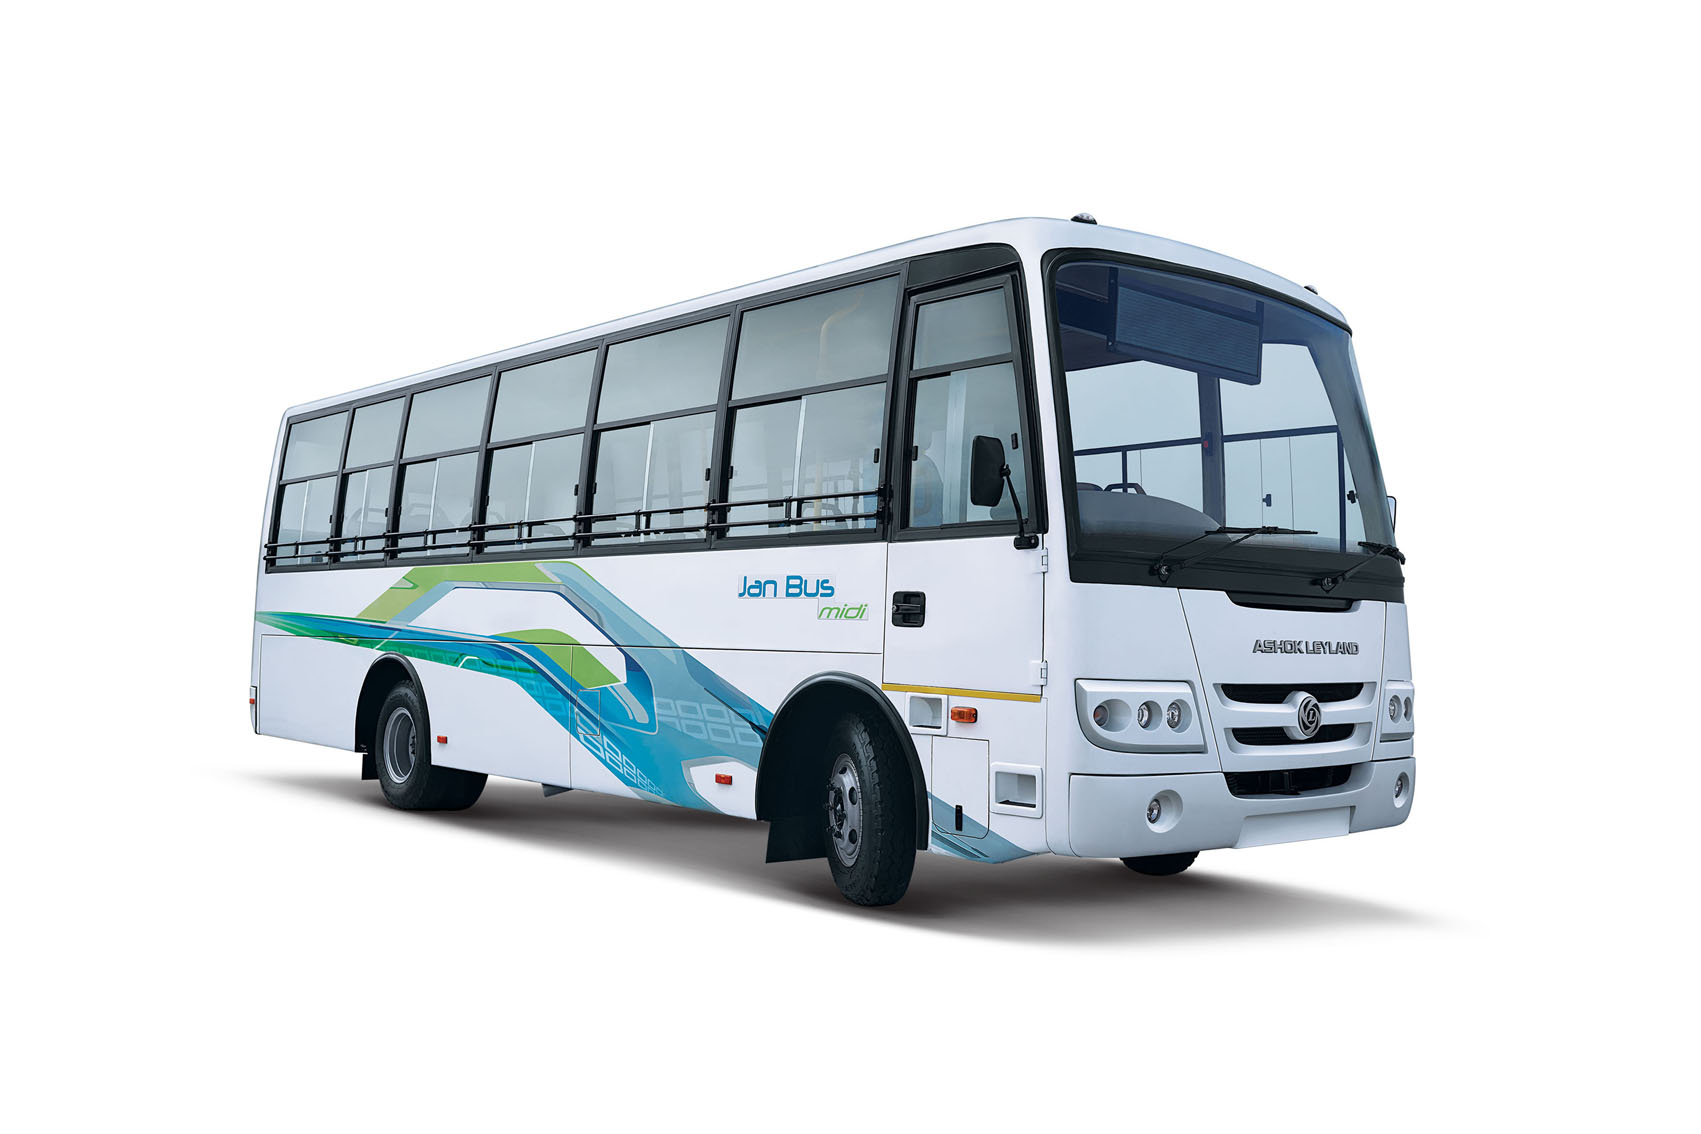 Car Rentals Bangalore Outstation Cab Hire Sedan Luxury Airport Taxi Wedding Business Travel